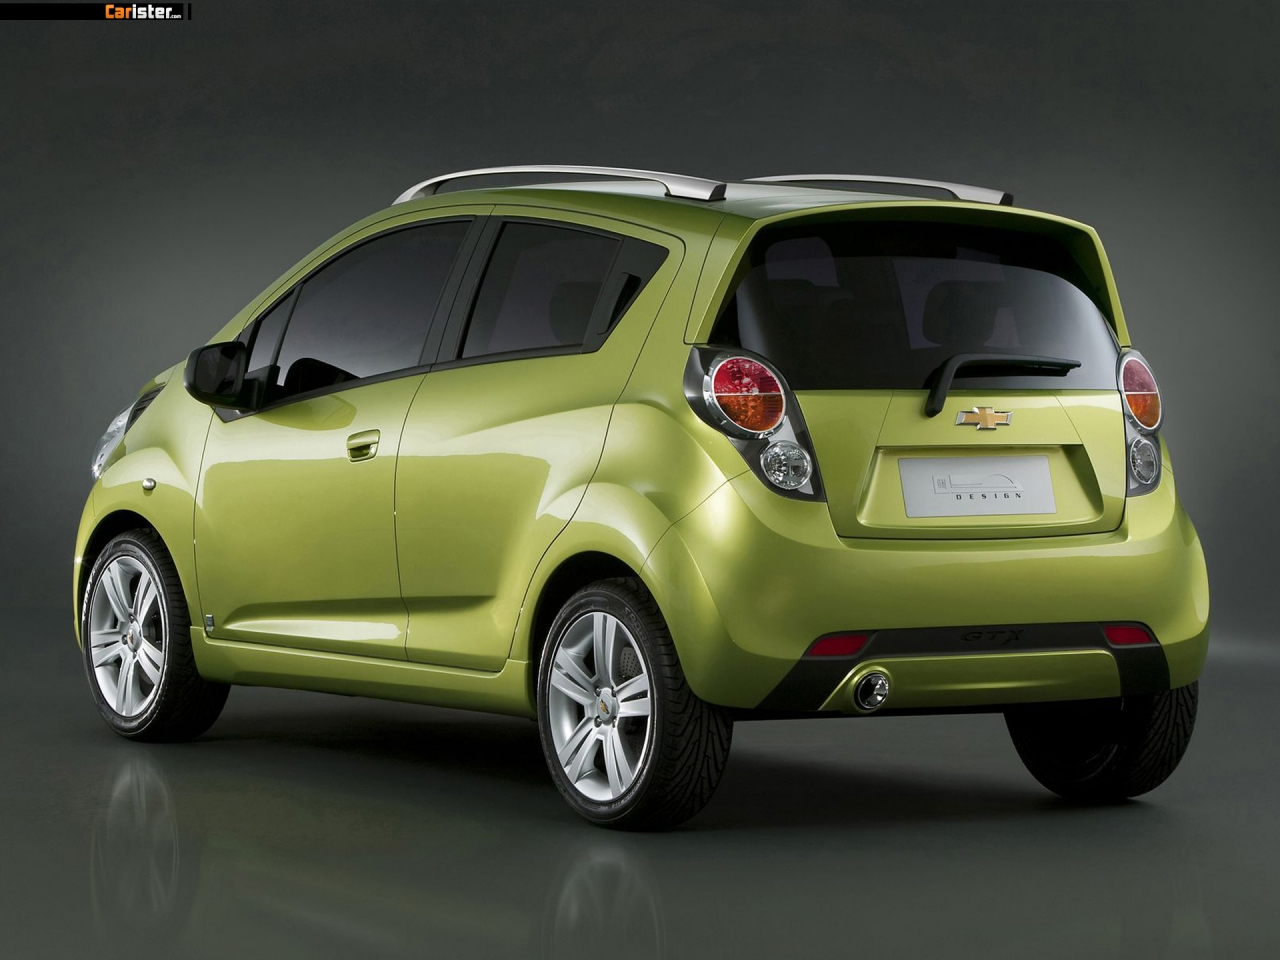 Chevrolet Spark 2010 - Photo 04 - Taille: 1280x960